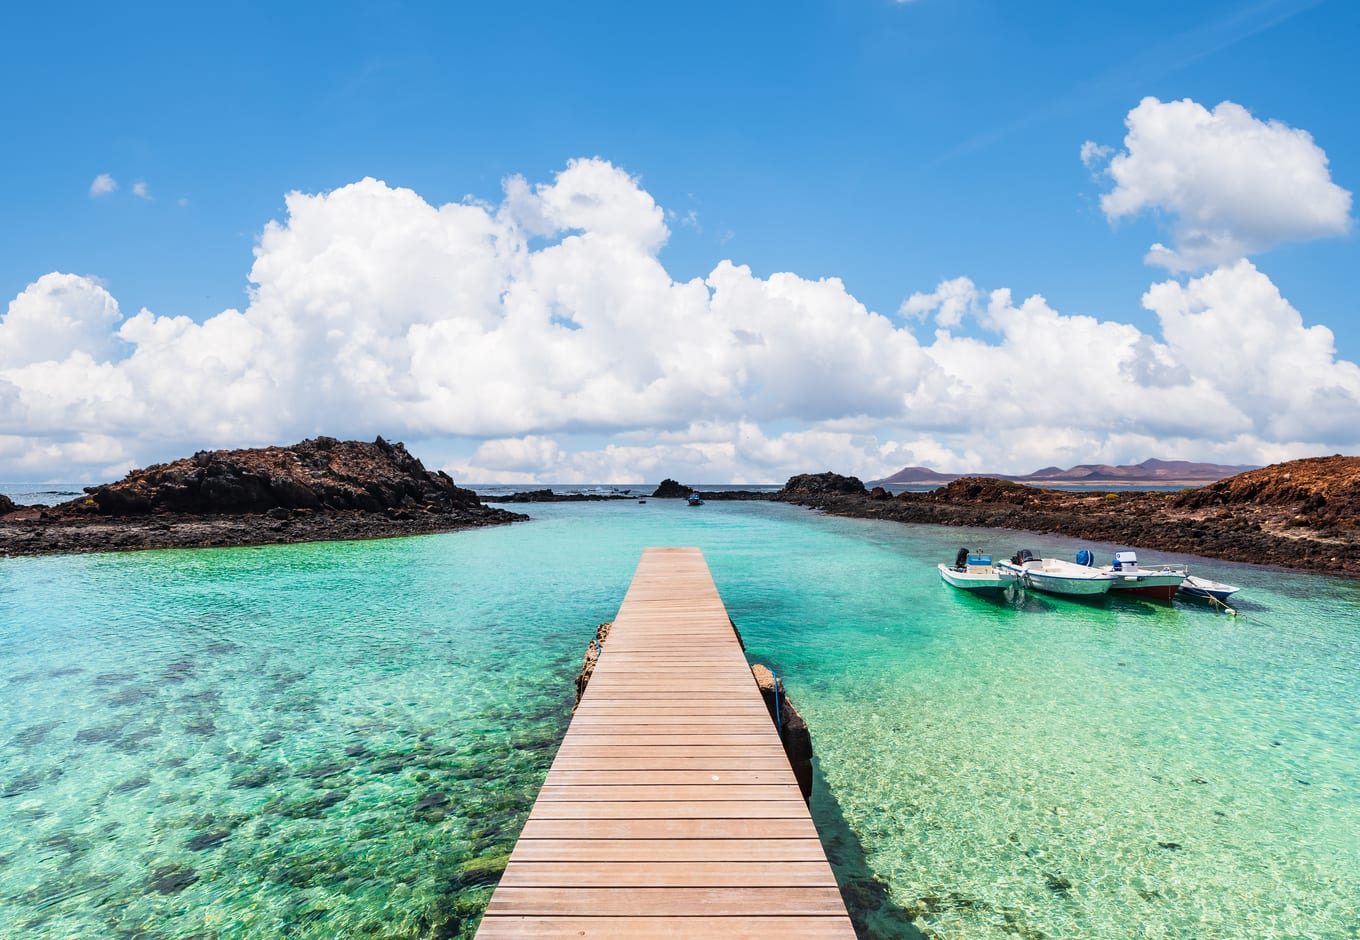 The wooden jetty of the Isla de Lobos in the Canary Islands, Spain.